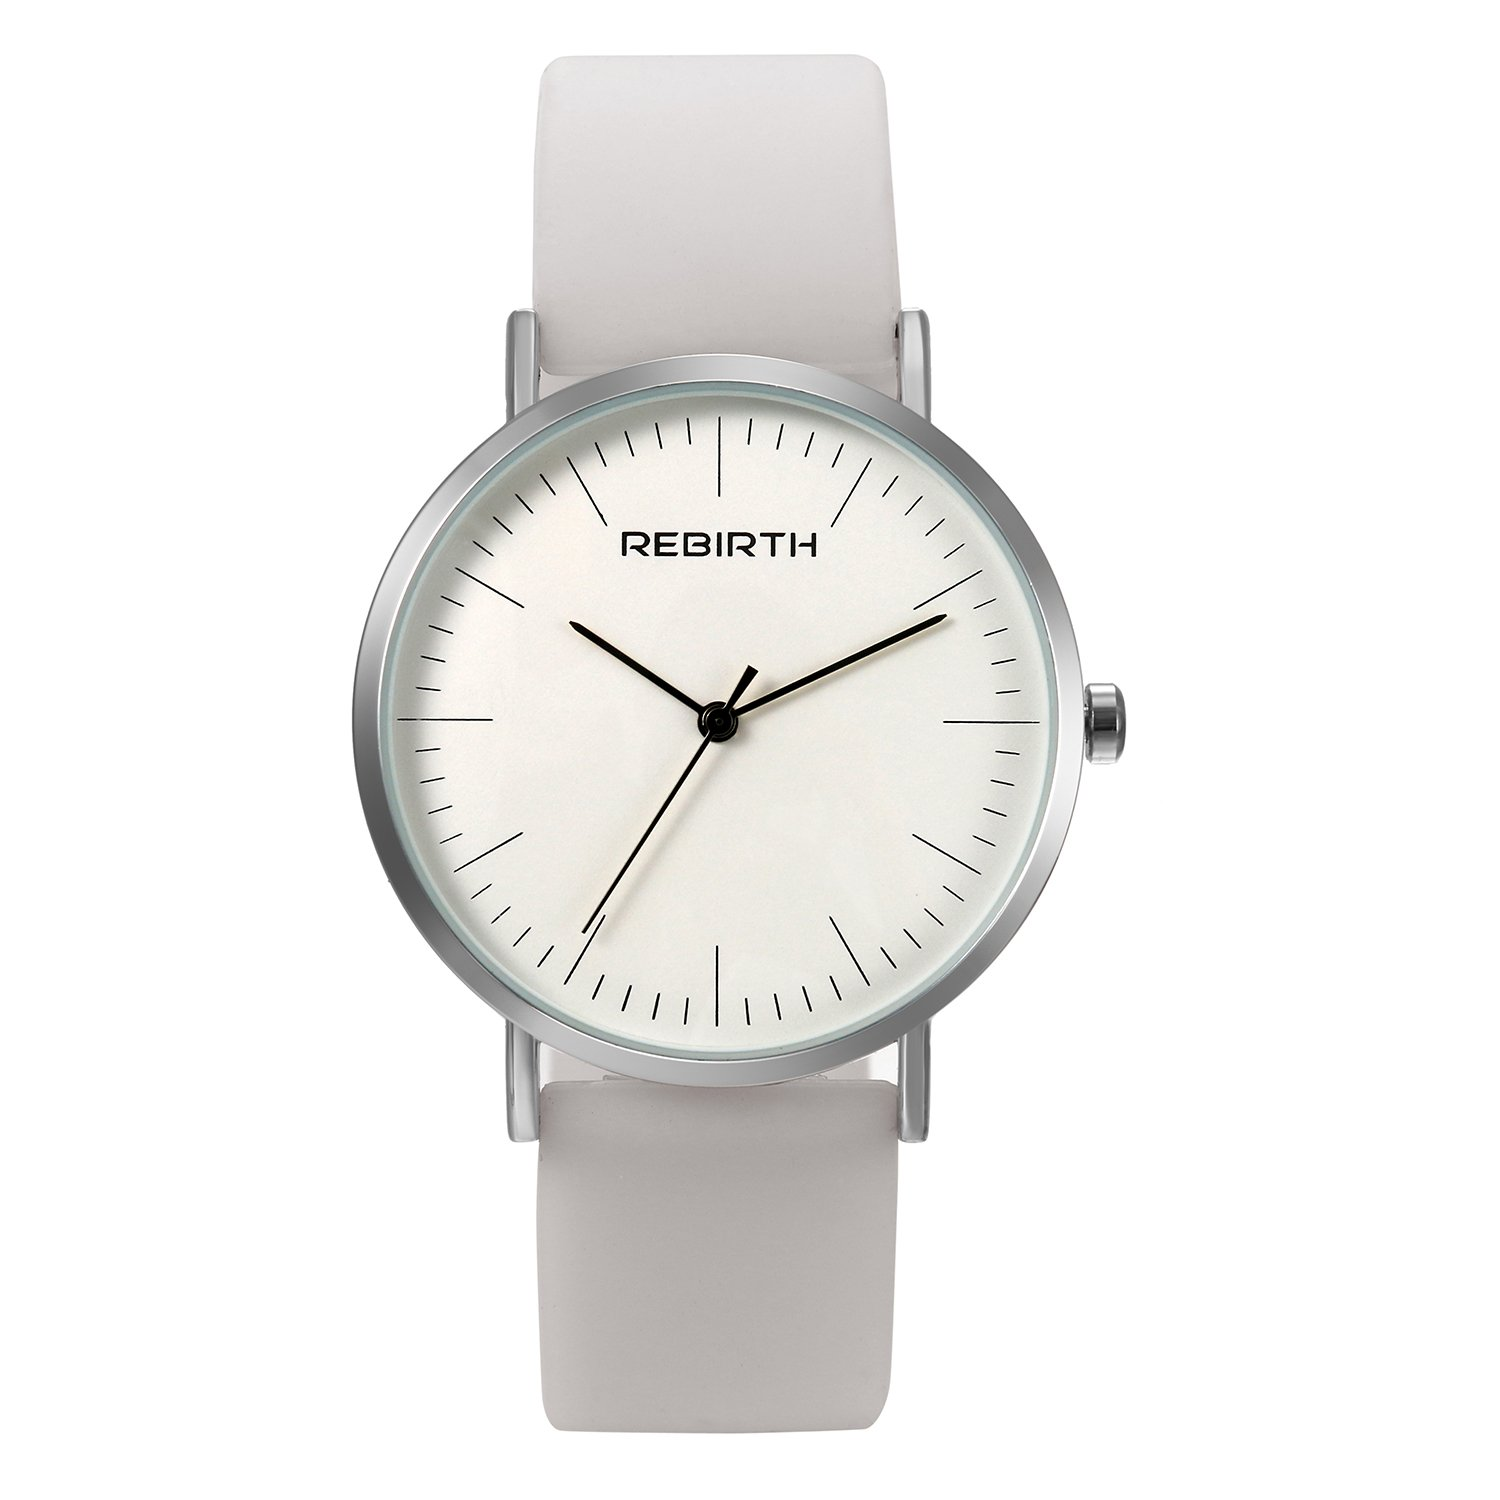 Ladies and Girls Jelly White Scrub Silicone Band Round Face Quartz Youth Wrist Watch Gift for Women